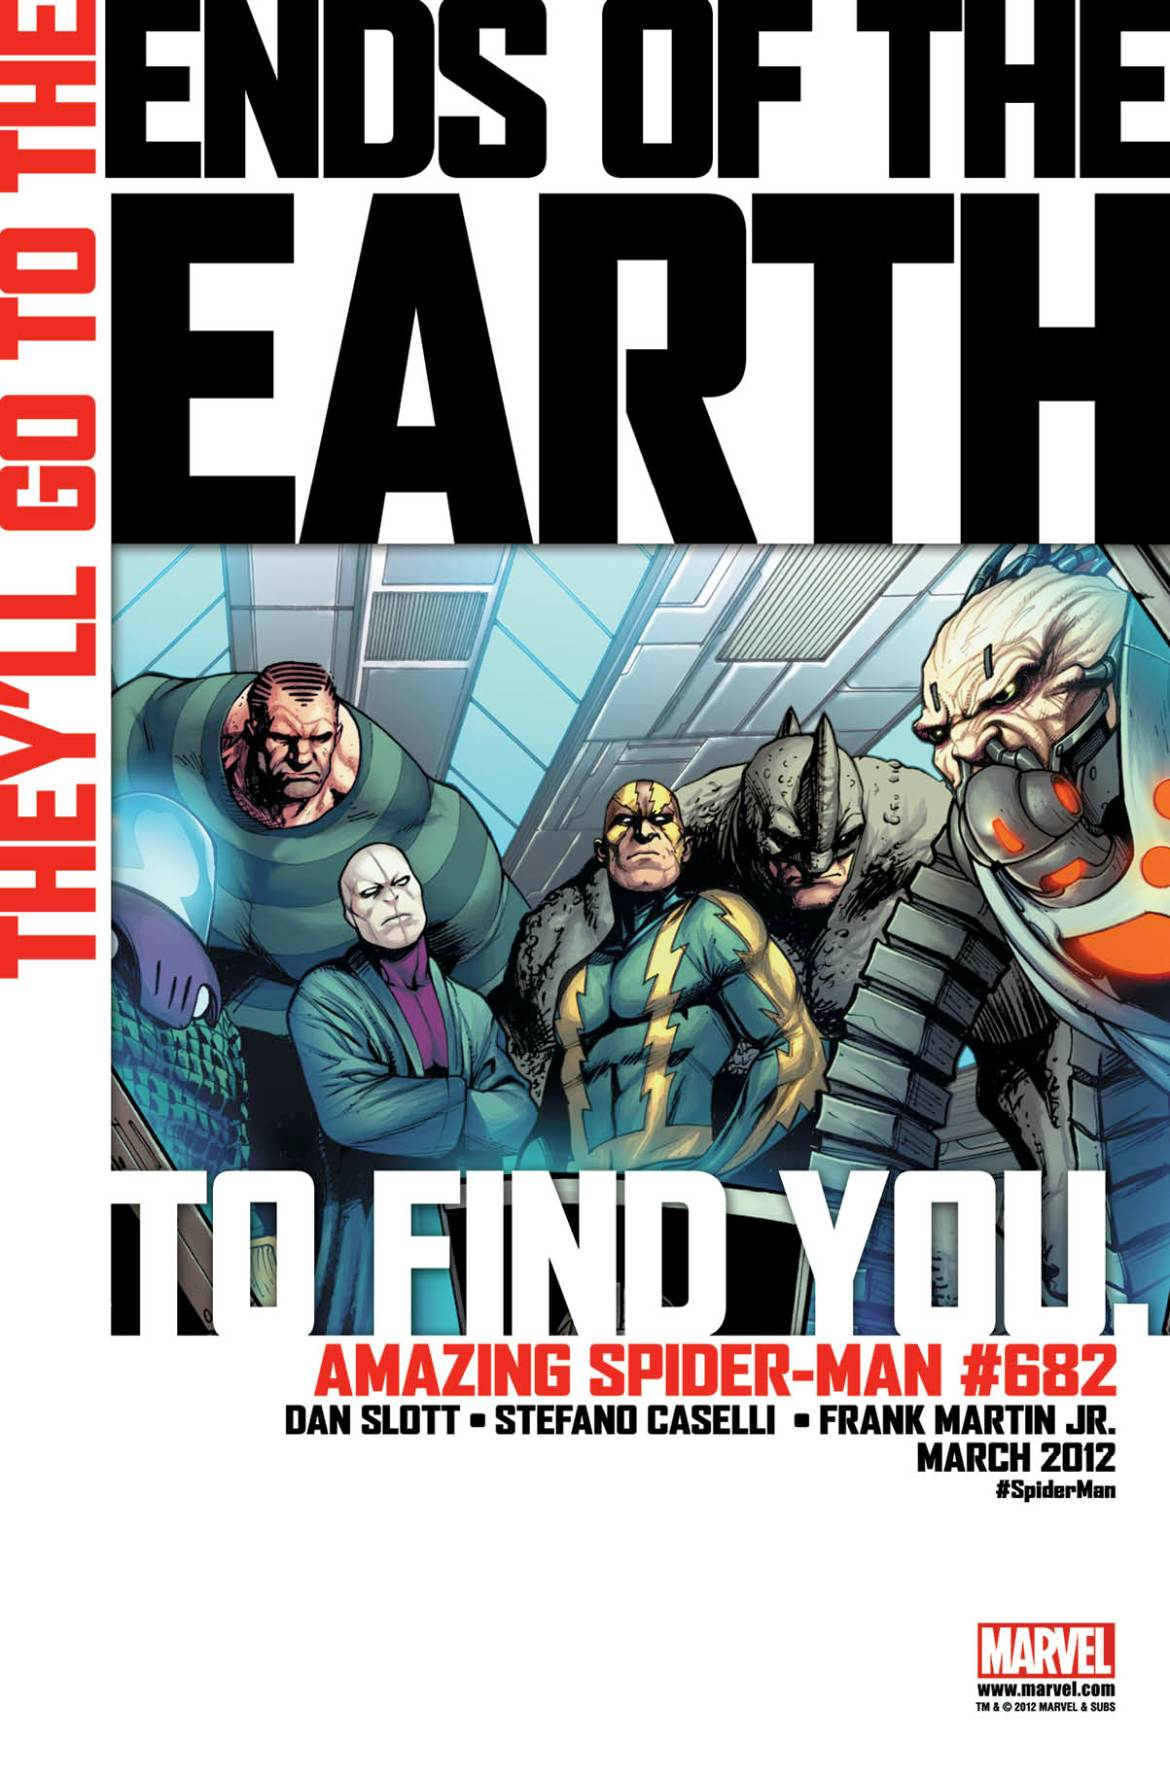 ASM_EndsOfTheEarth1 Mysterio takes Spider-Man to THE ENDS OF THE EARTH